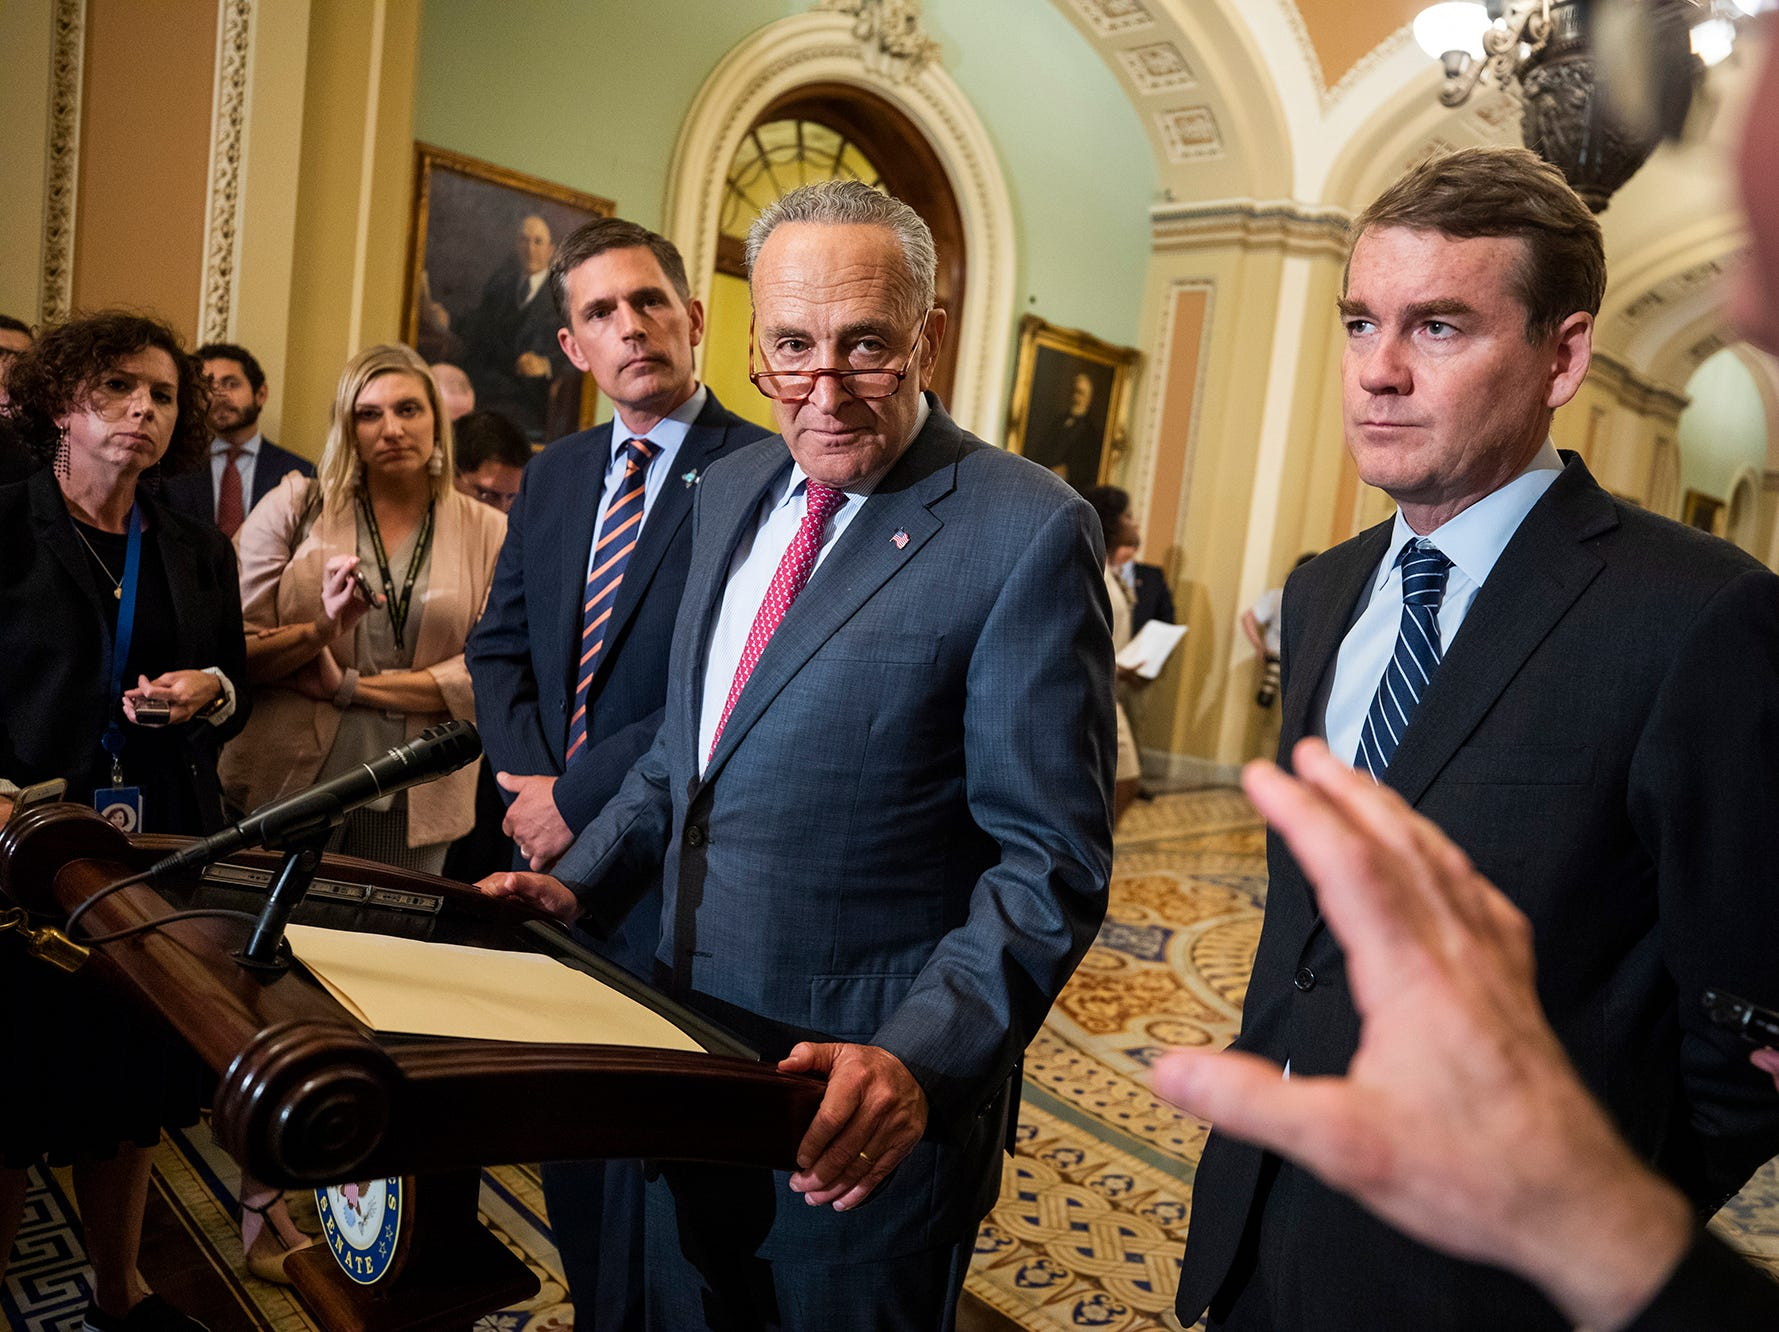 Republican Senate Minority Leader from New York Chuck Schumer, center,  takes questions from the media in the US Capitol in Washington, DC on Aug. 28, 2018. Schumer spoke about renaming the Russell Senate Building after the late Republican Senator from Arizona John McCain.